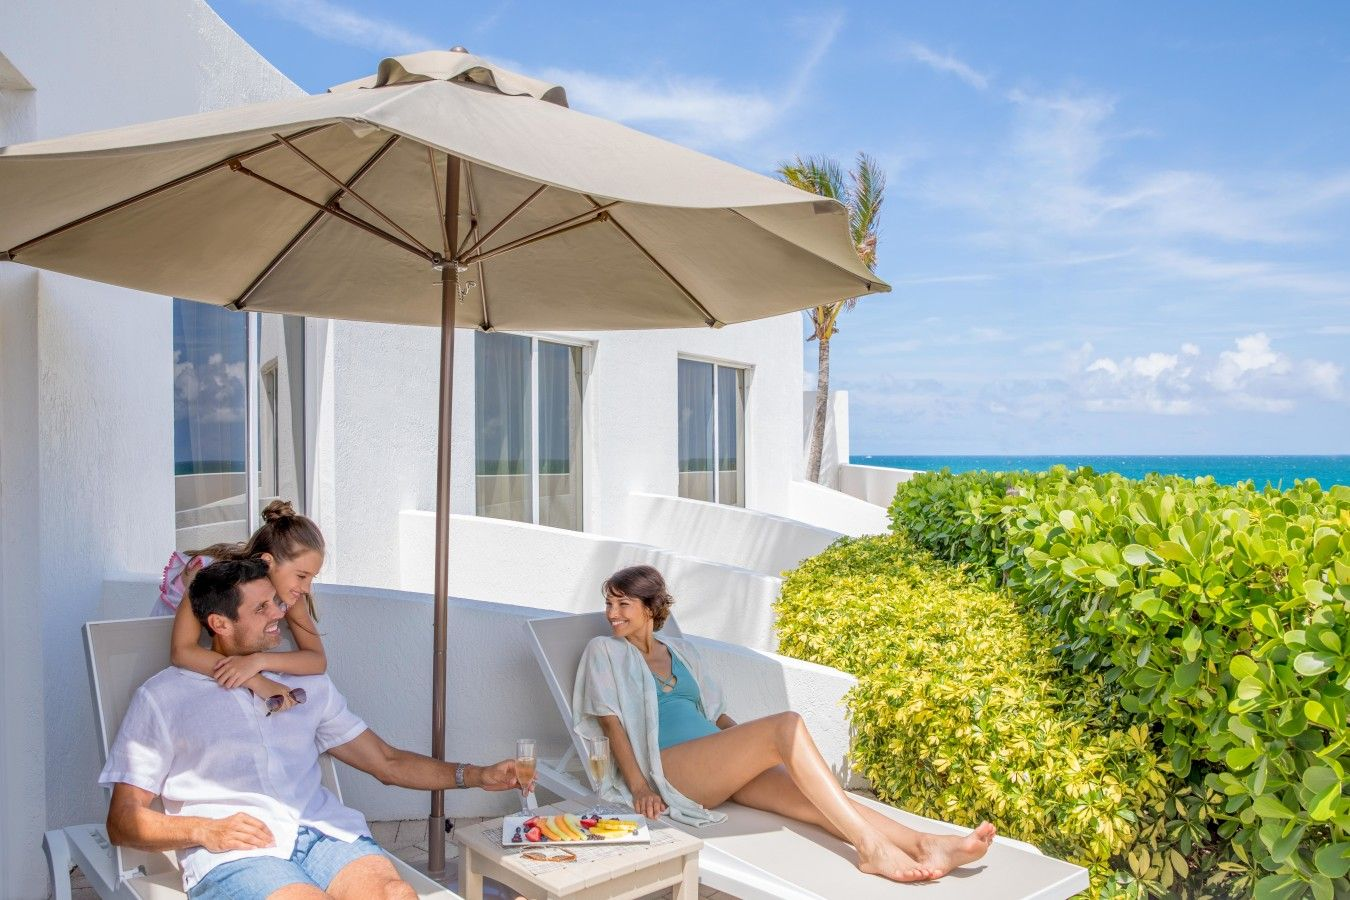 Cabanas at Trump International Beach Resort